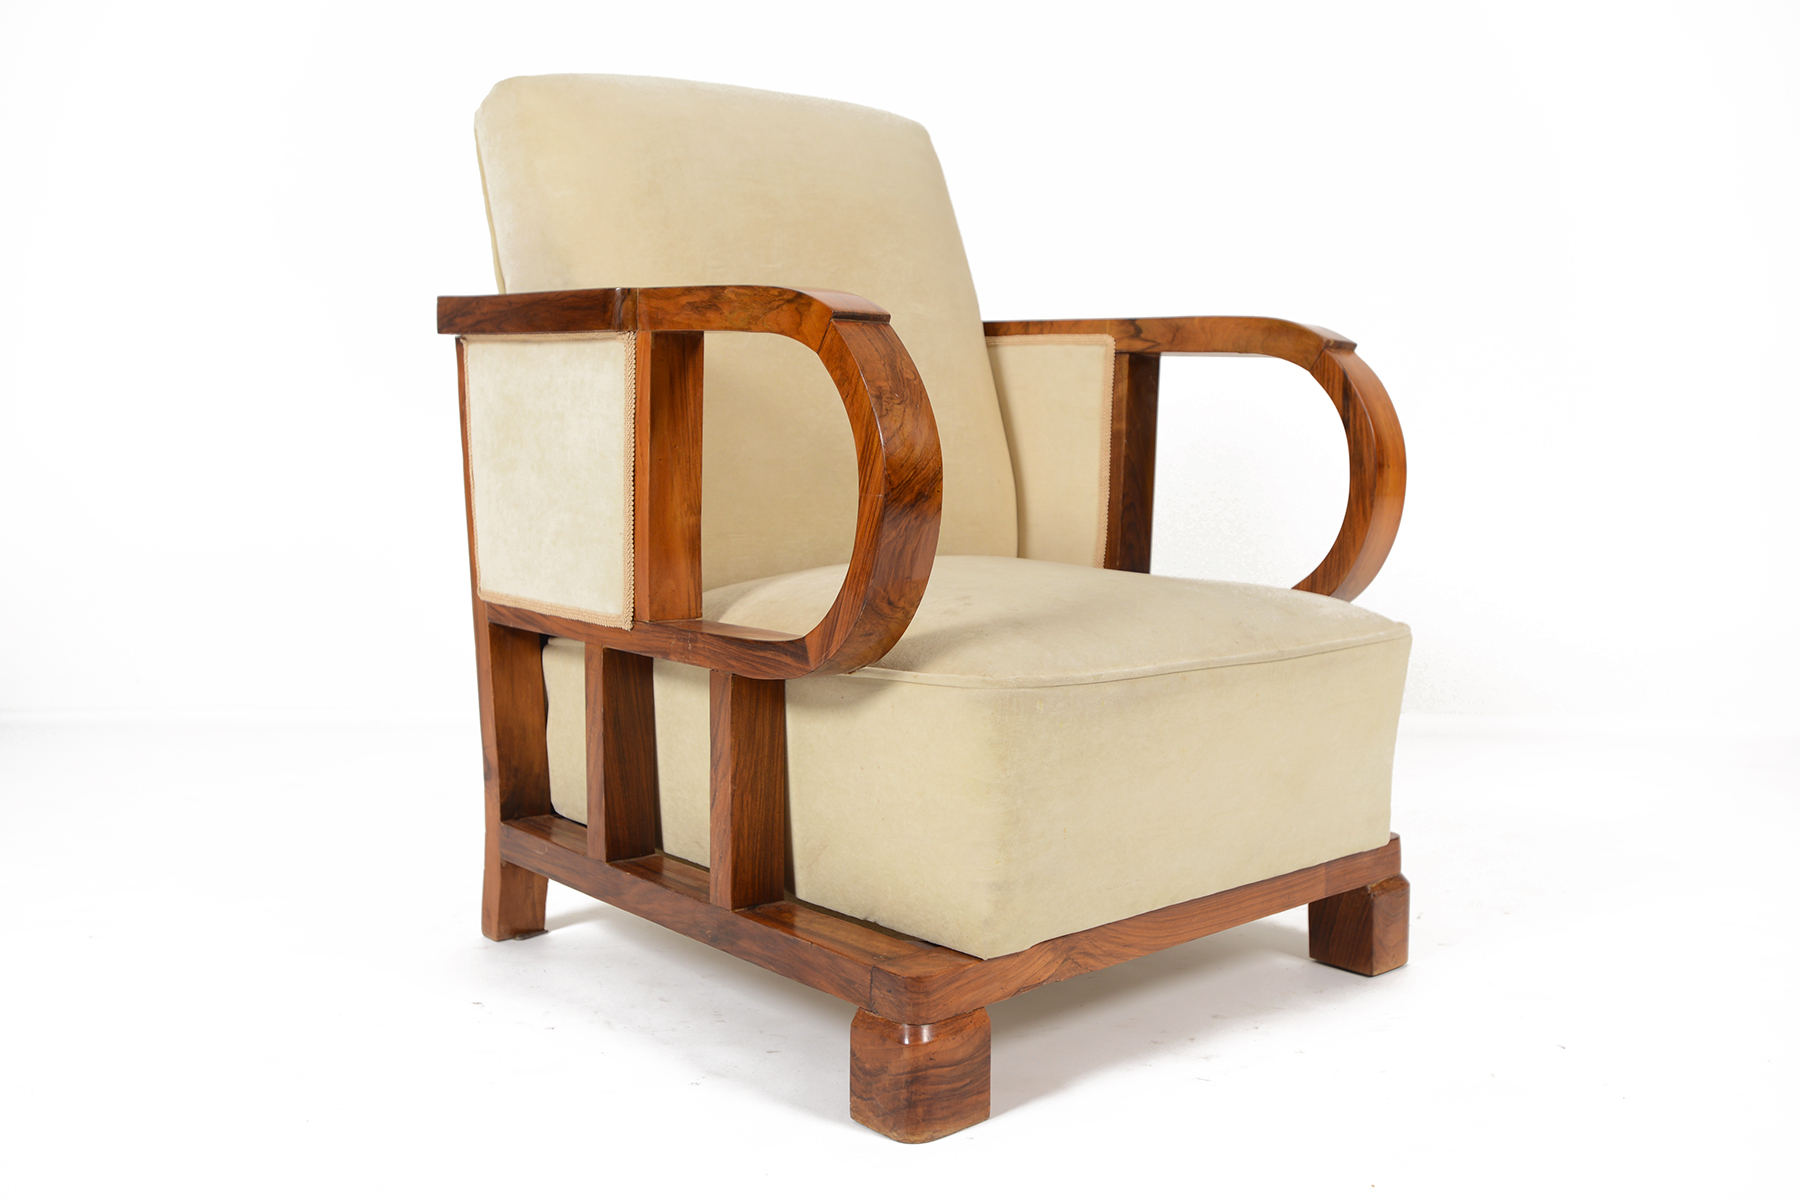 Eggshell Chair French Art Deco Walnut Club Chair In Eggshell Mid Century Mobler